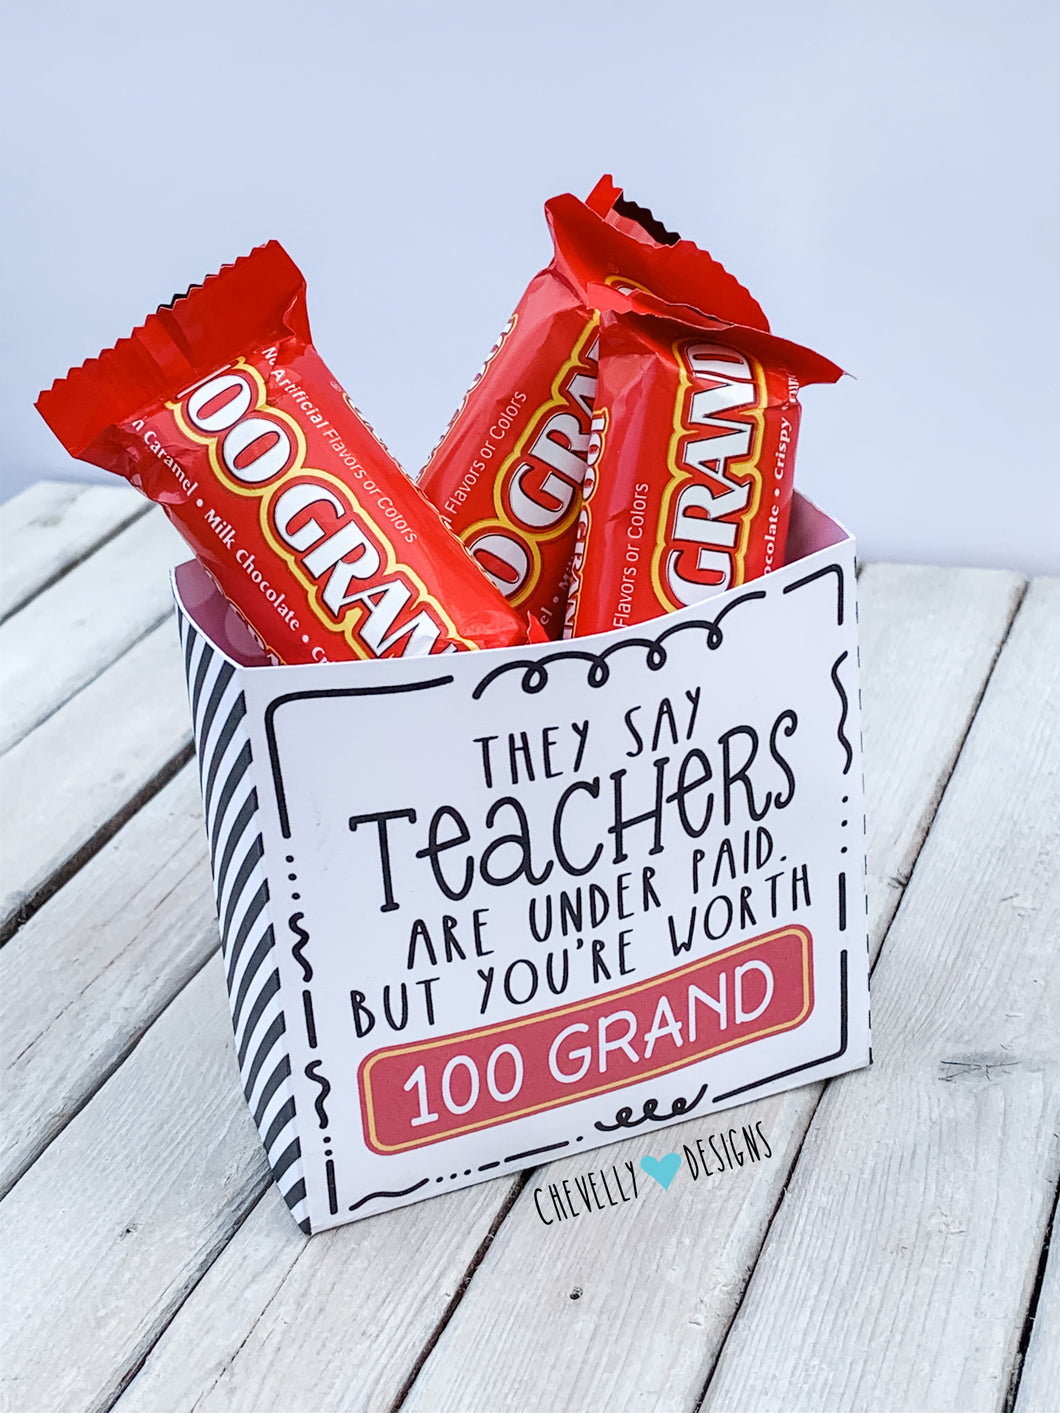 Printable Teacher Appreciation Gift Bag/Box for 100 Grand Candy - Small Treat Bag | Instant Digital File